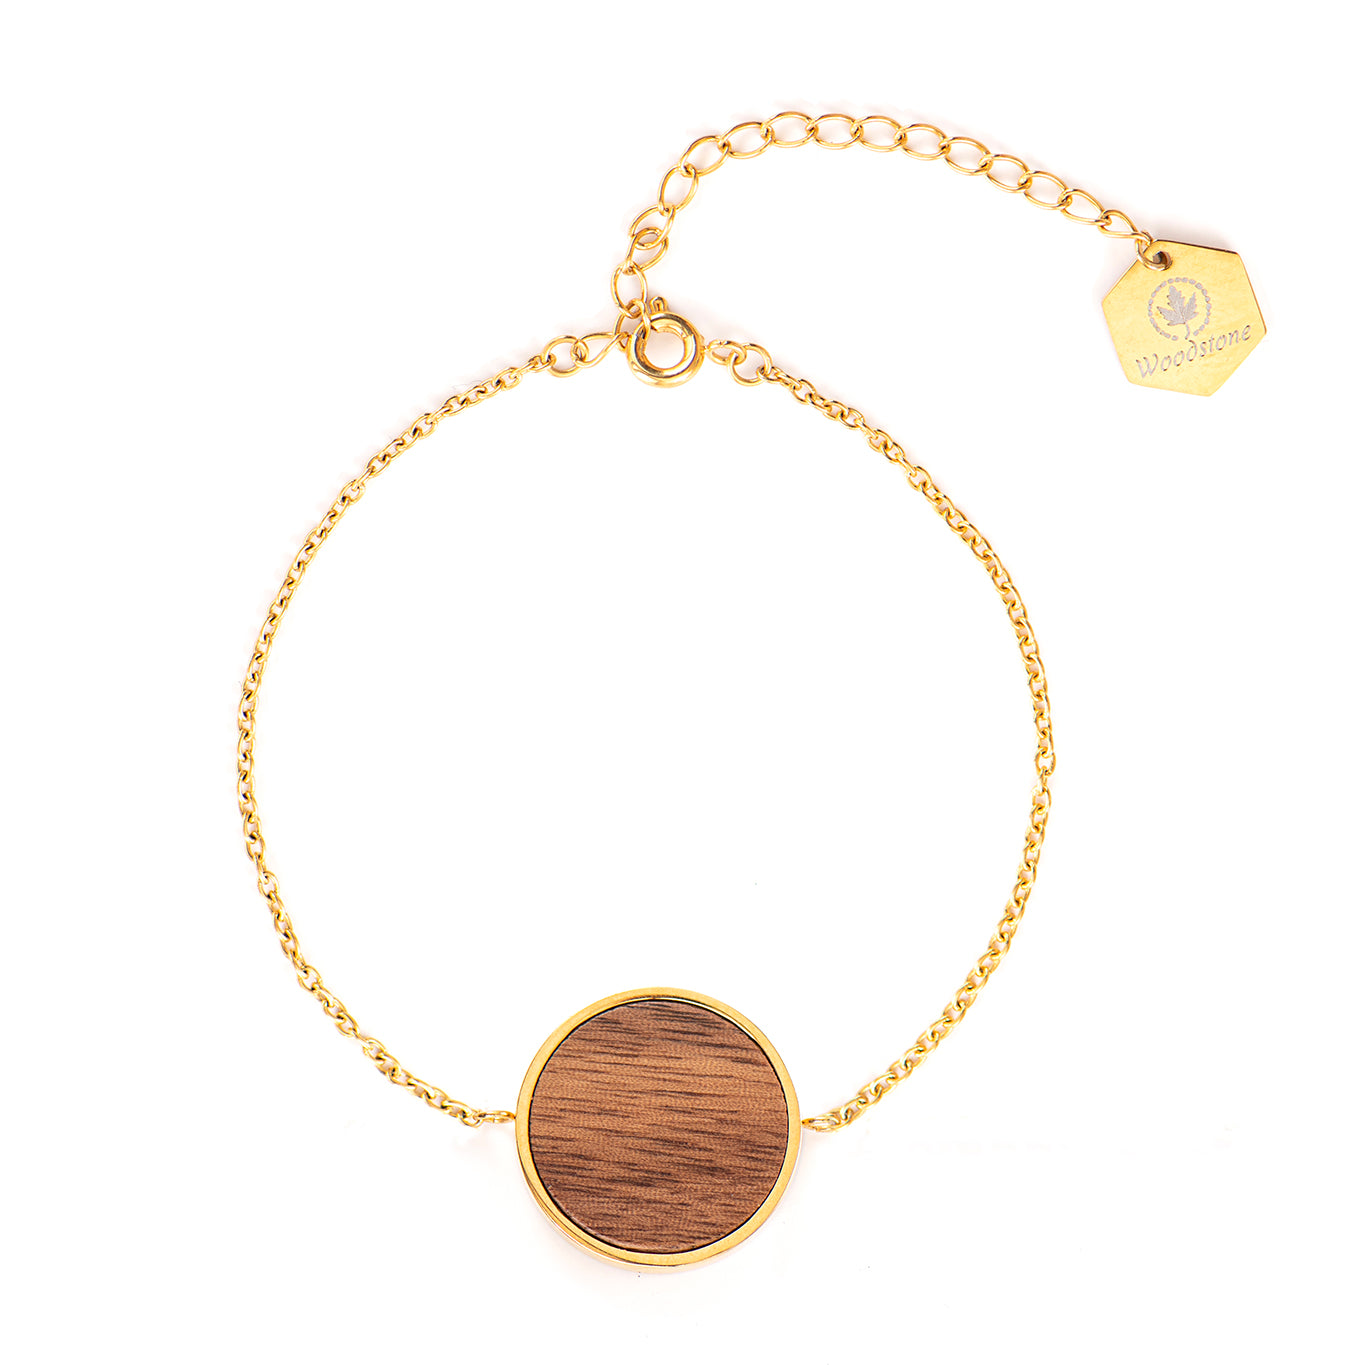 Daisy Walnut - Gold Bracelet